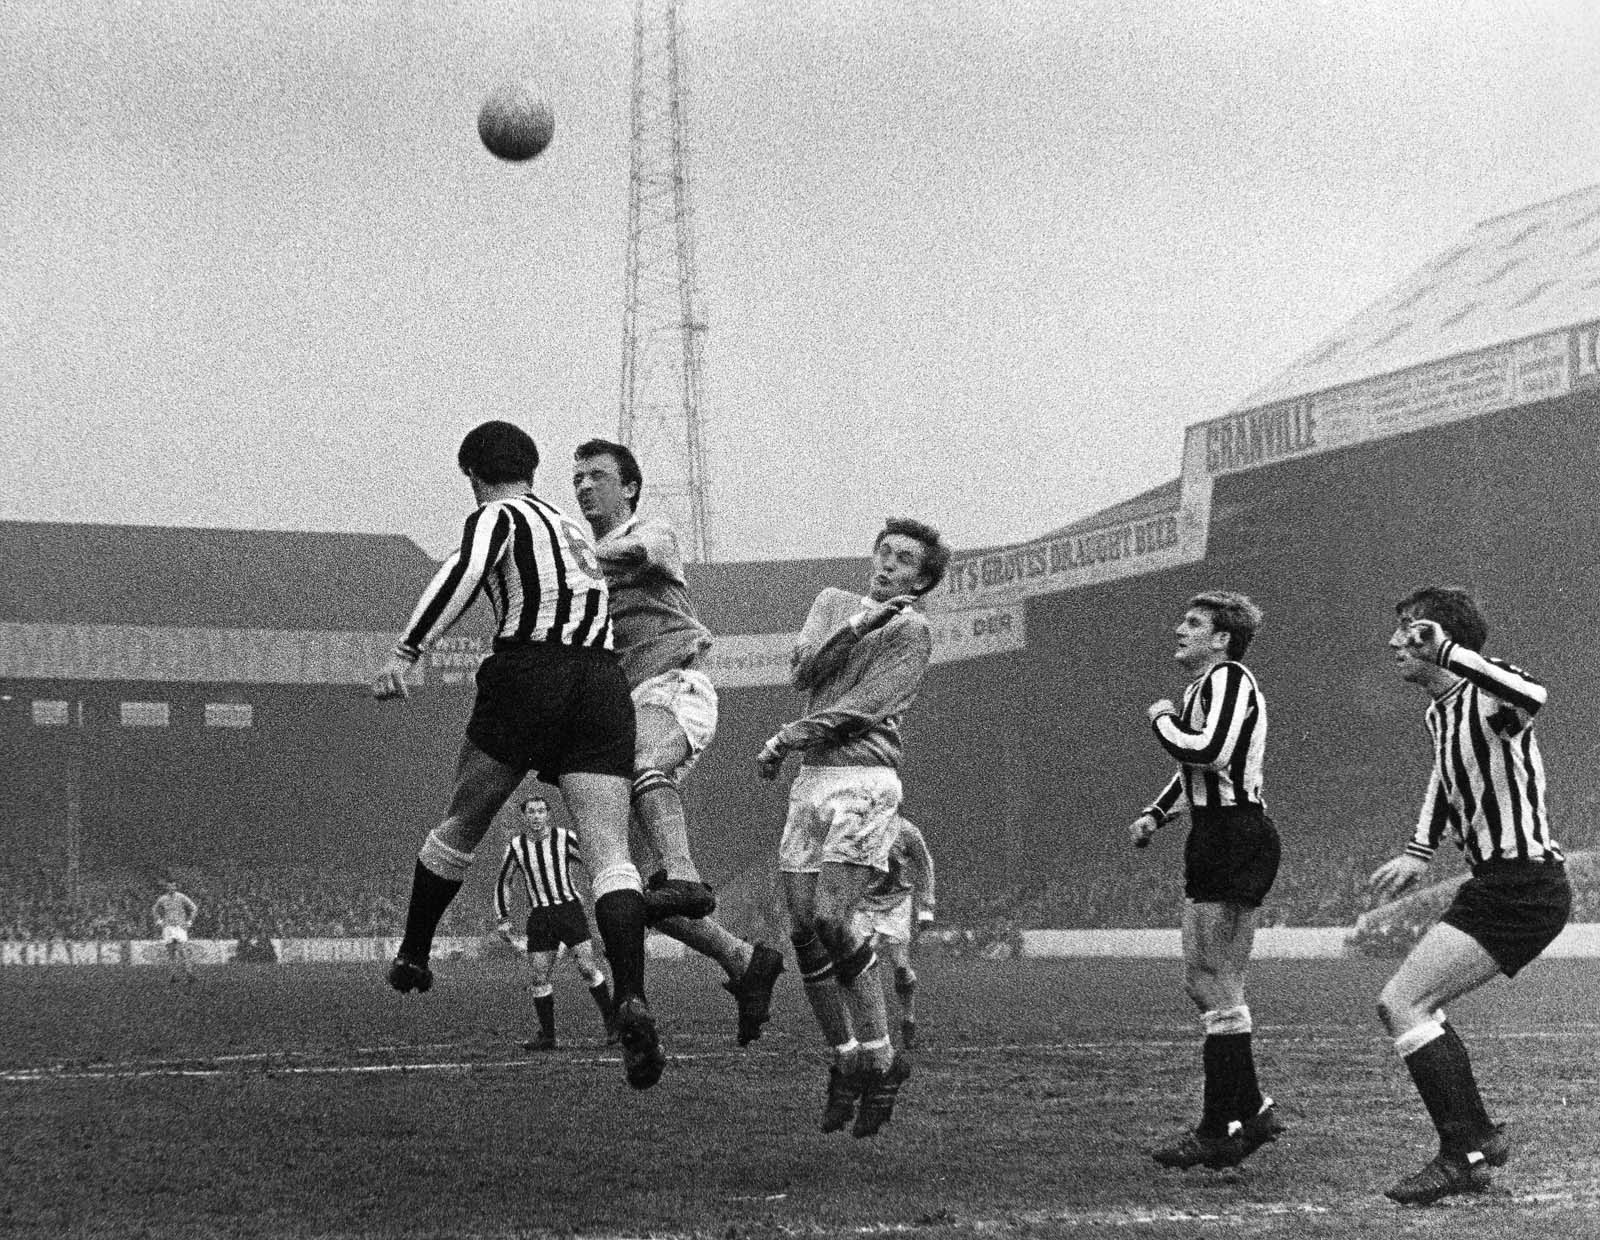 black and white photo of footballers jumping for a ball in a goal nouth